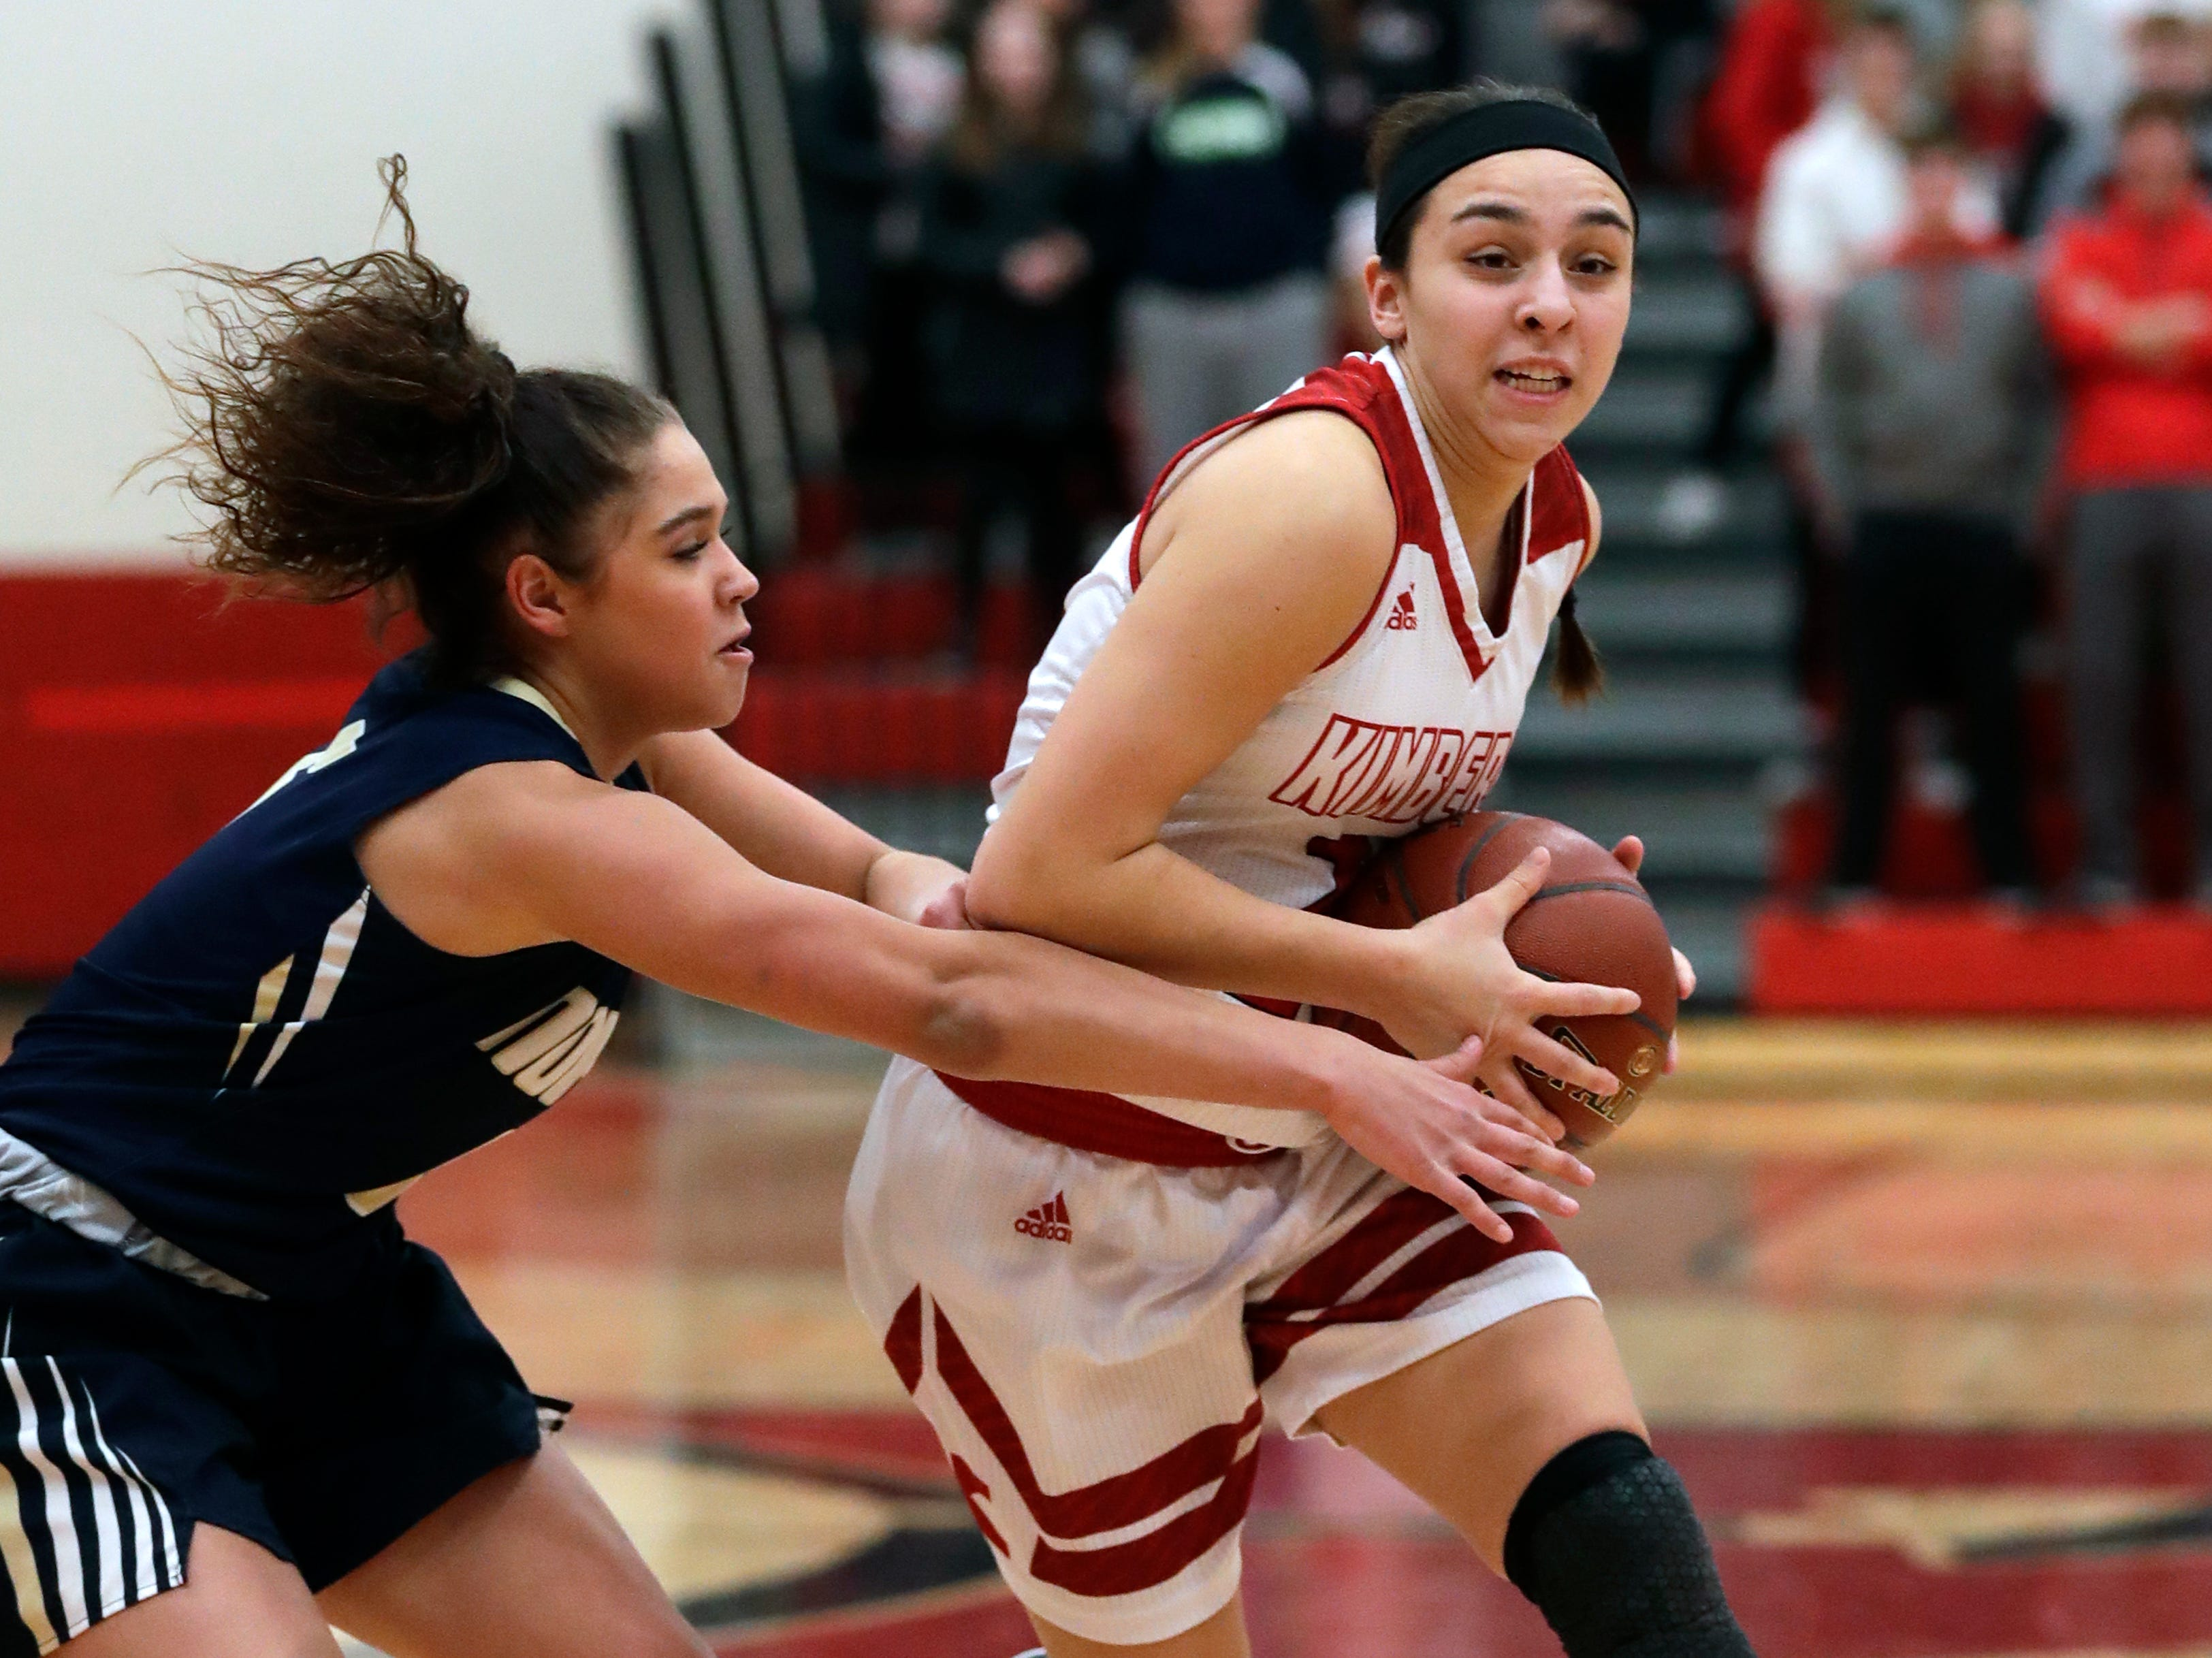 Appleton North High School's Niki Van Wyk, left, defends against Kimberly High School's Shea Dechant during their girls basketball game Monday, February 11, 2019, in Kimberly, Wis. Dan Powers/USA TODAY NETWORK-Wisconsin